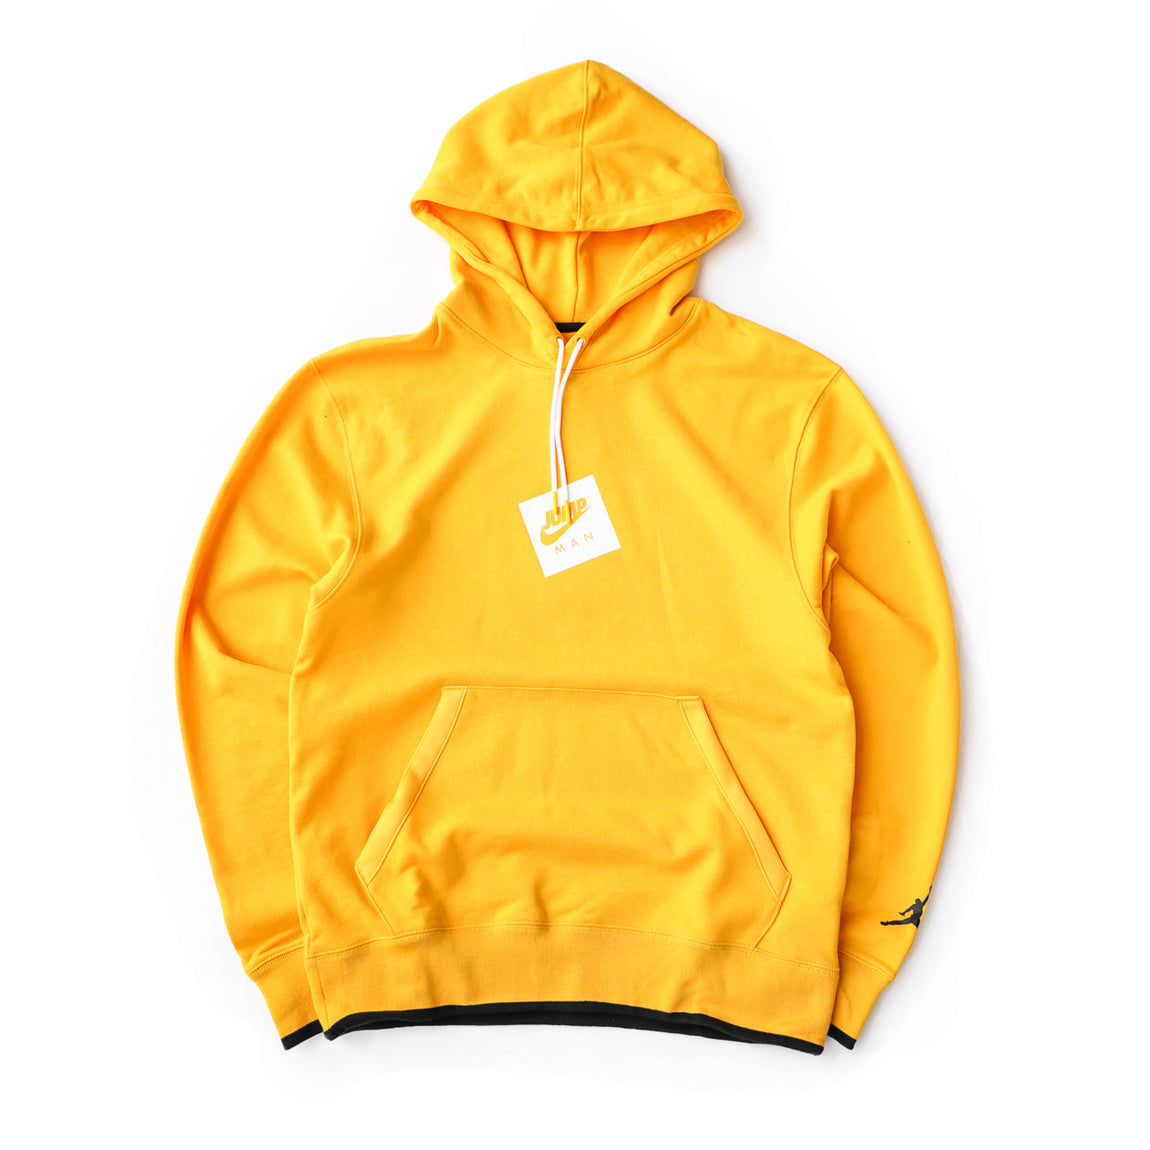 Jordan Jumpman Classics Hoodie (University Gold/White) - Jordan Jumpman Classics Hoodie (University Gold/White) -